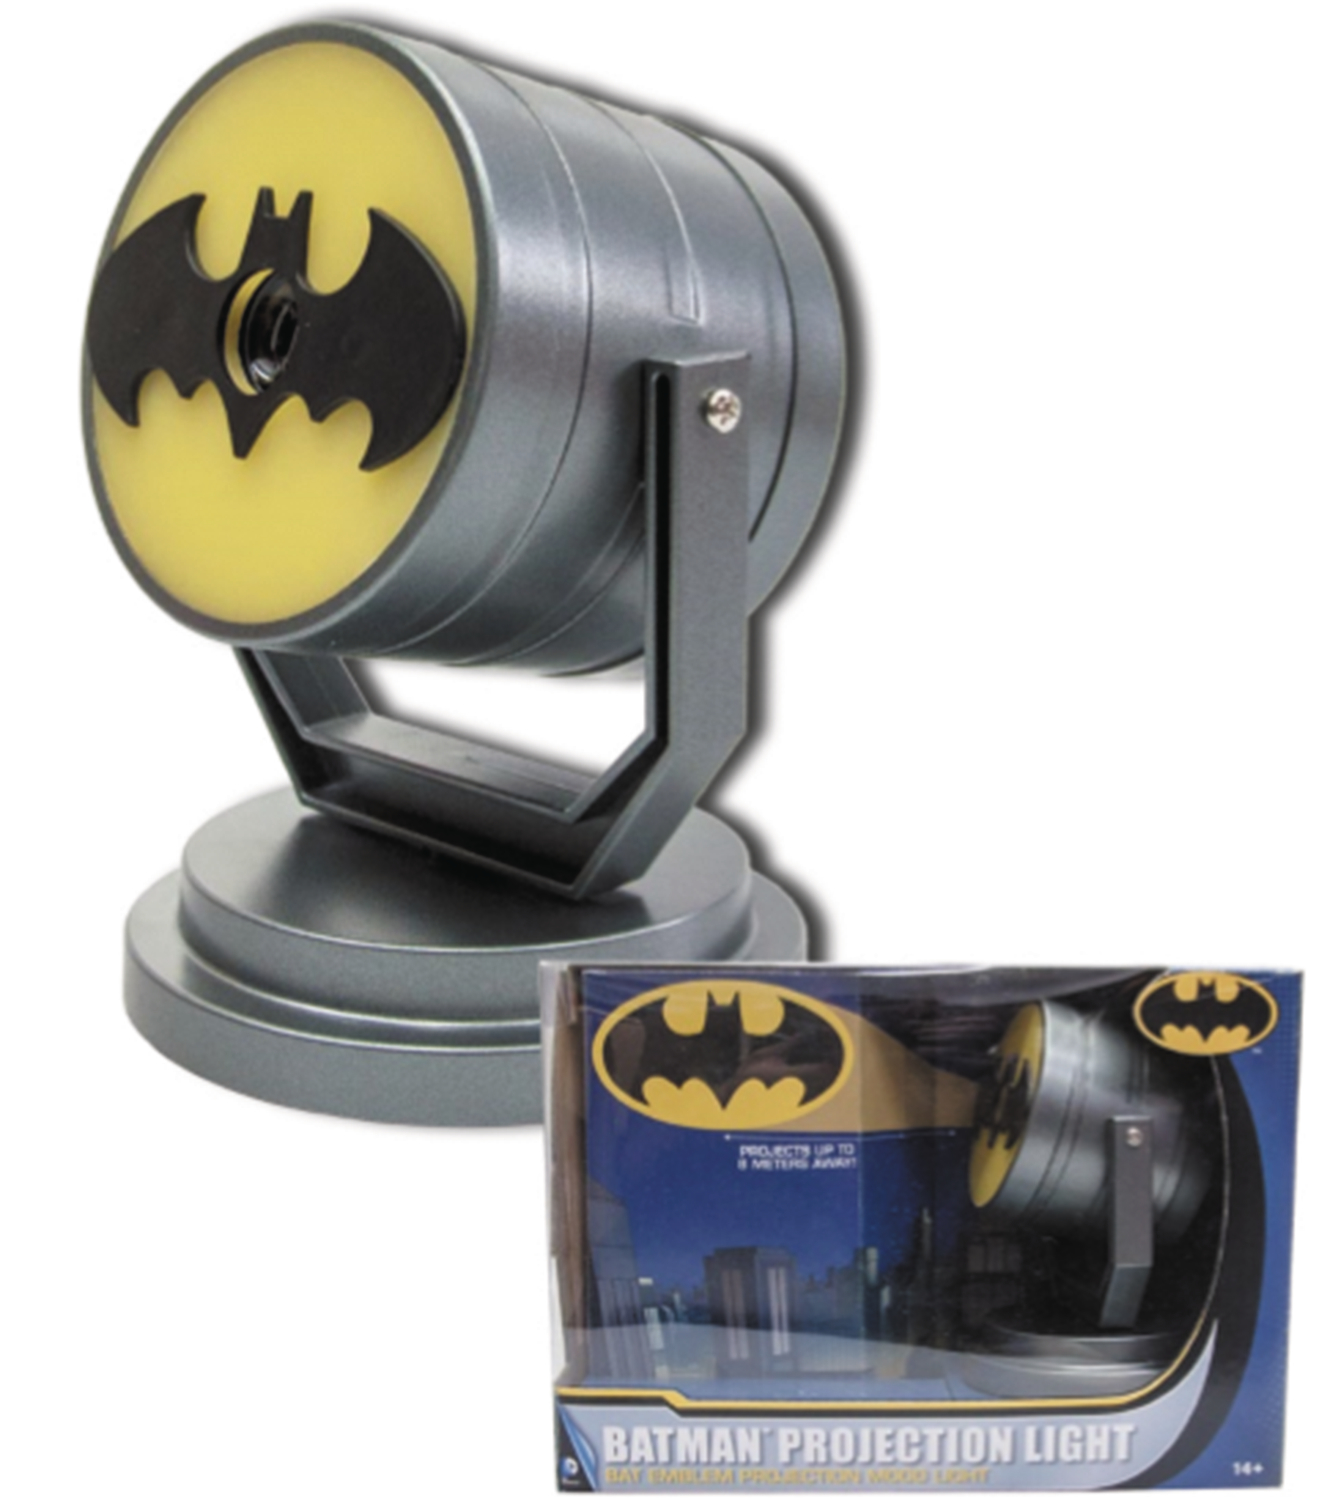 apr168562 batman bat signal projector light previews world